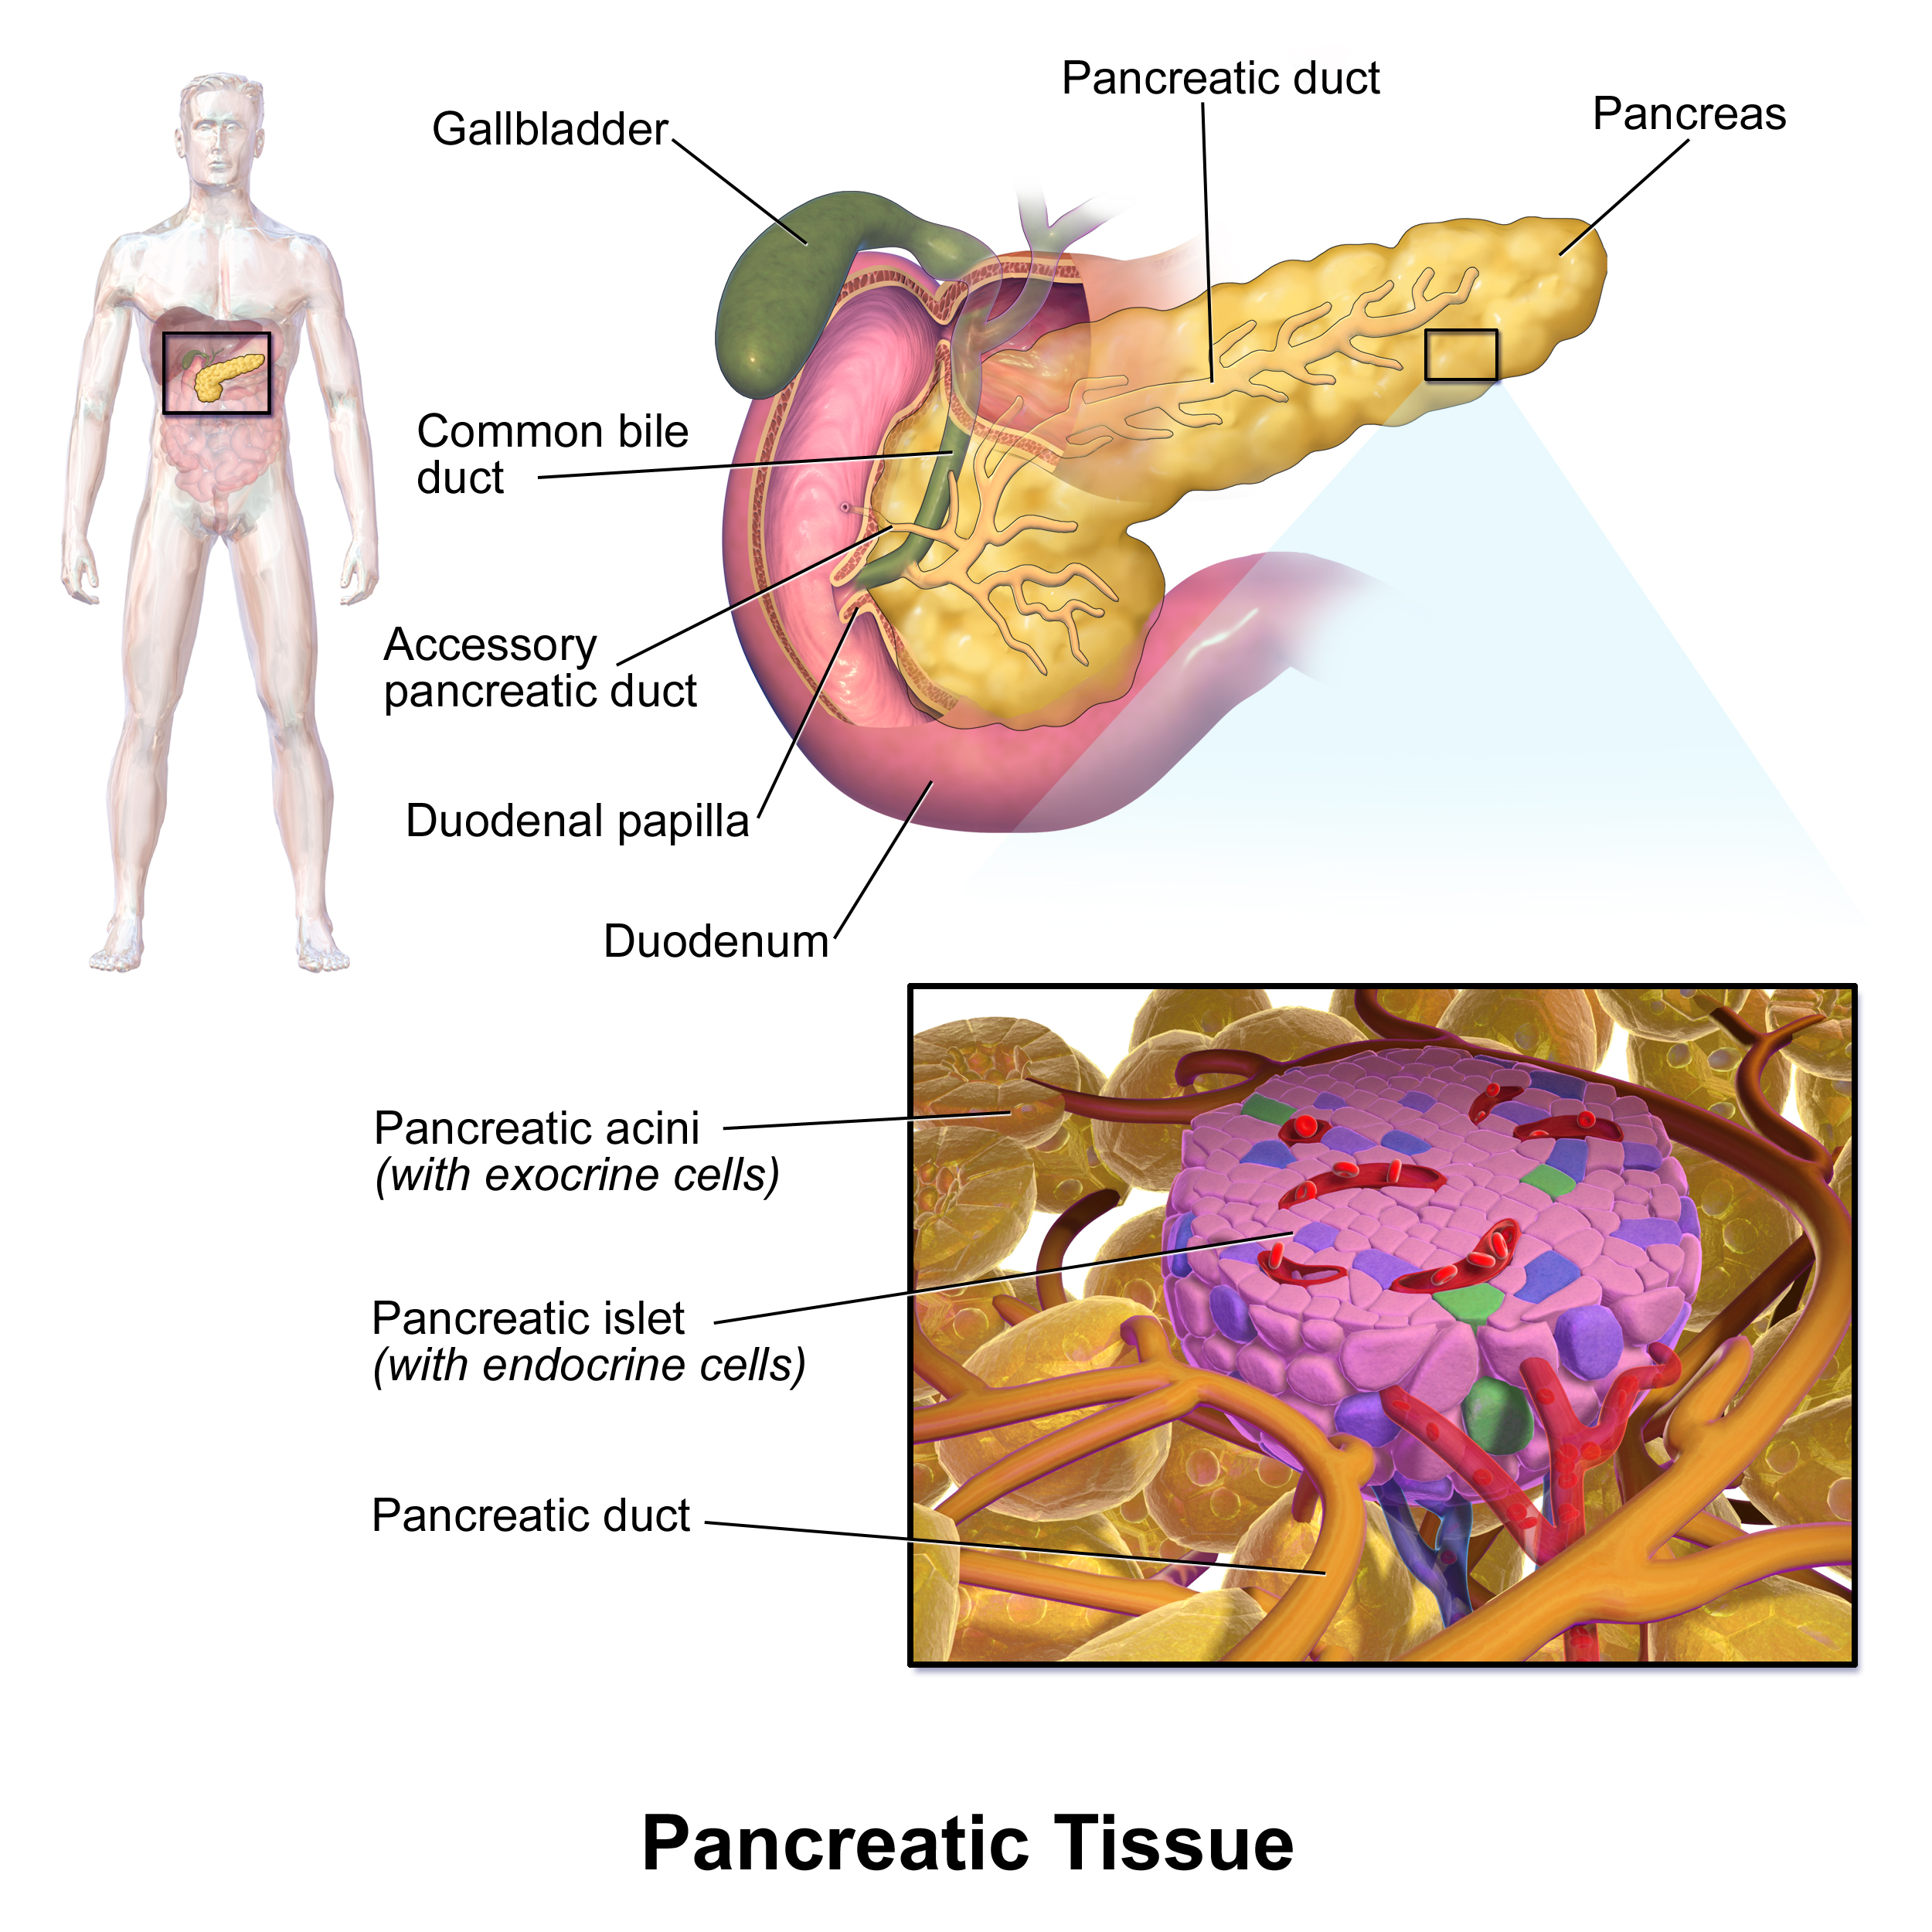 Gallbladder And Pancreatic Disease And Dysfunction An Overview